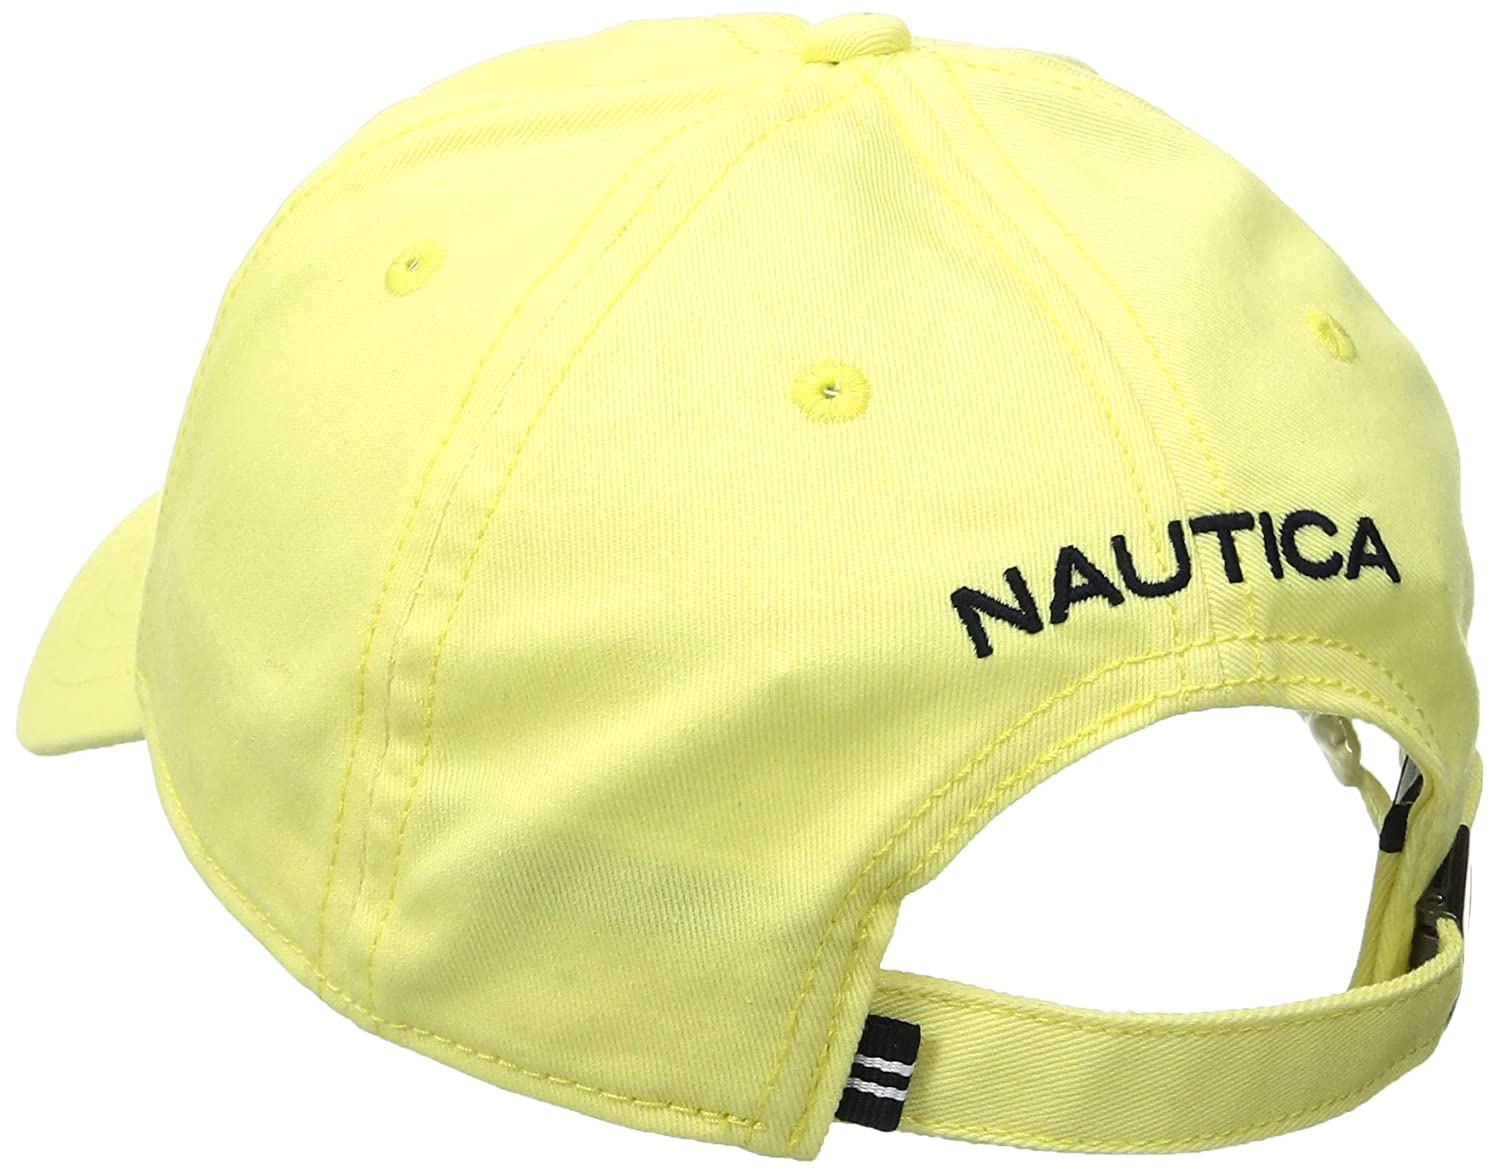 5b1cb838e42454 Nautica Men's FCA j Class 6 Panel Baseball Cap Regular Fit, Lemon Meringue,  OSZ: Amazon.co.uk: Clothing